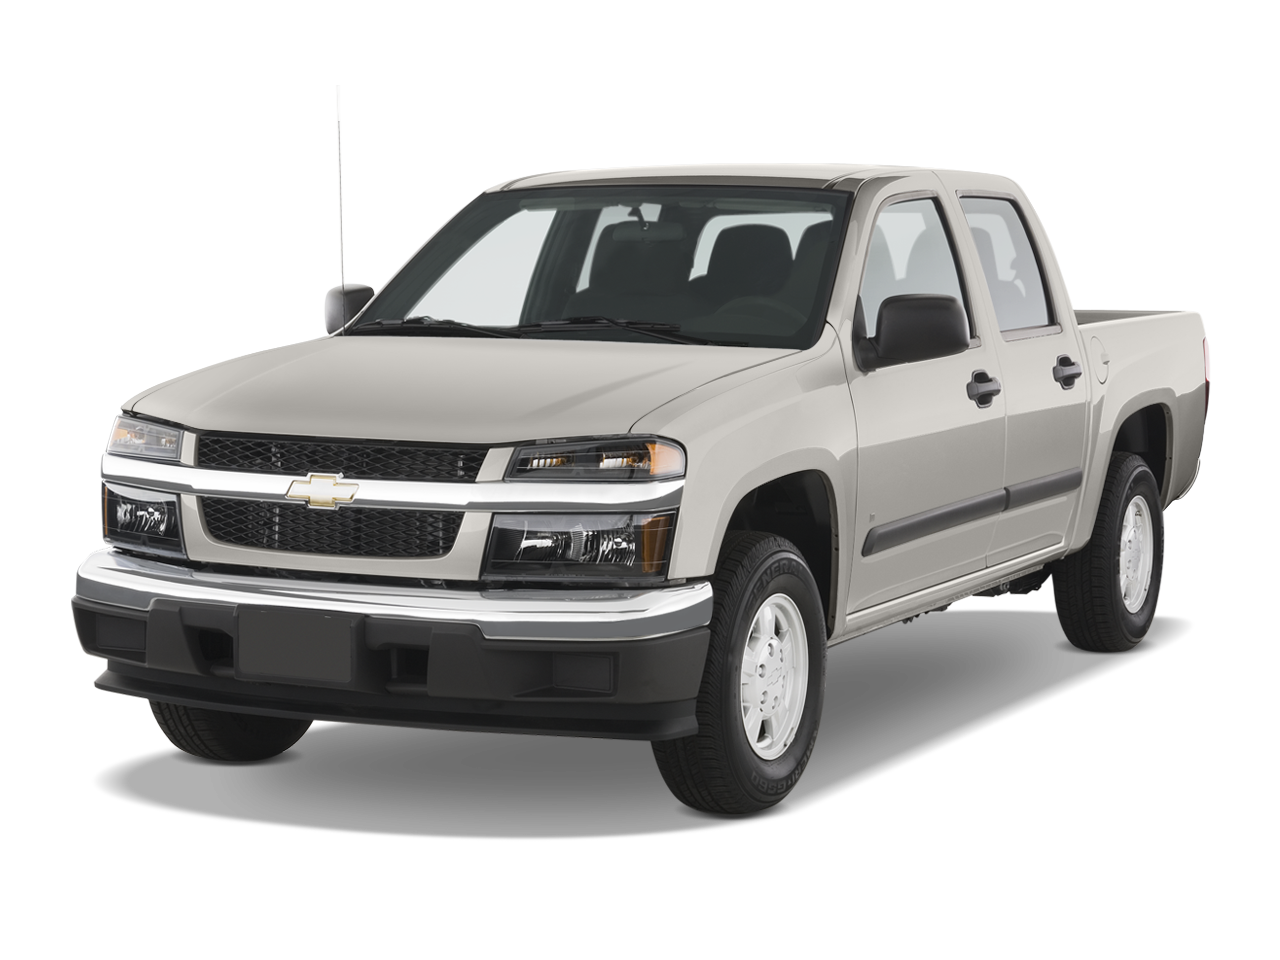 2009 chevy colorado and 2009 gmc canyon first drive midsize pickup review automobile magazine. Black Bedroom Furniture Sets. Home Design Ideas